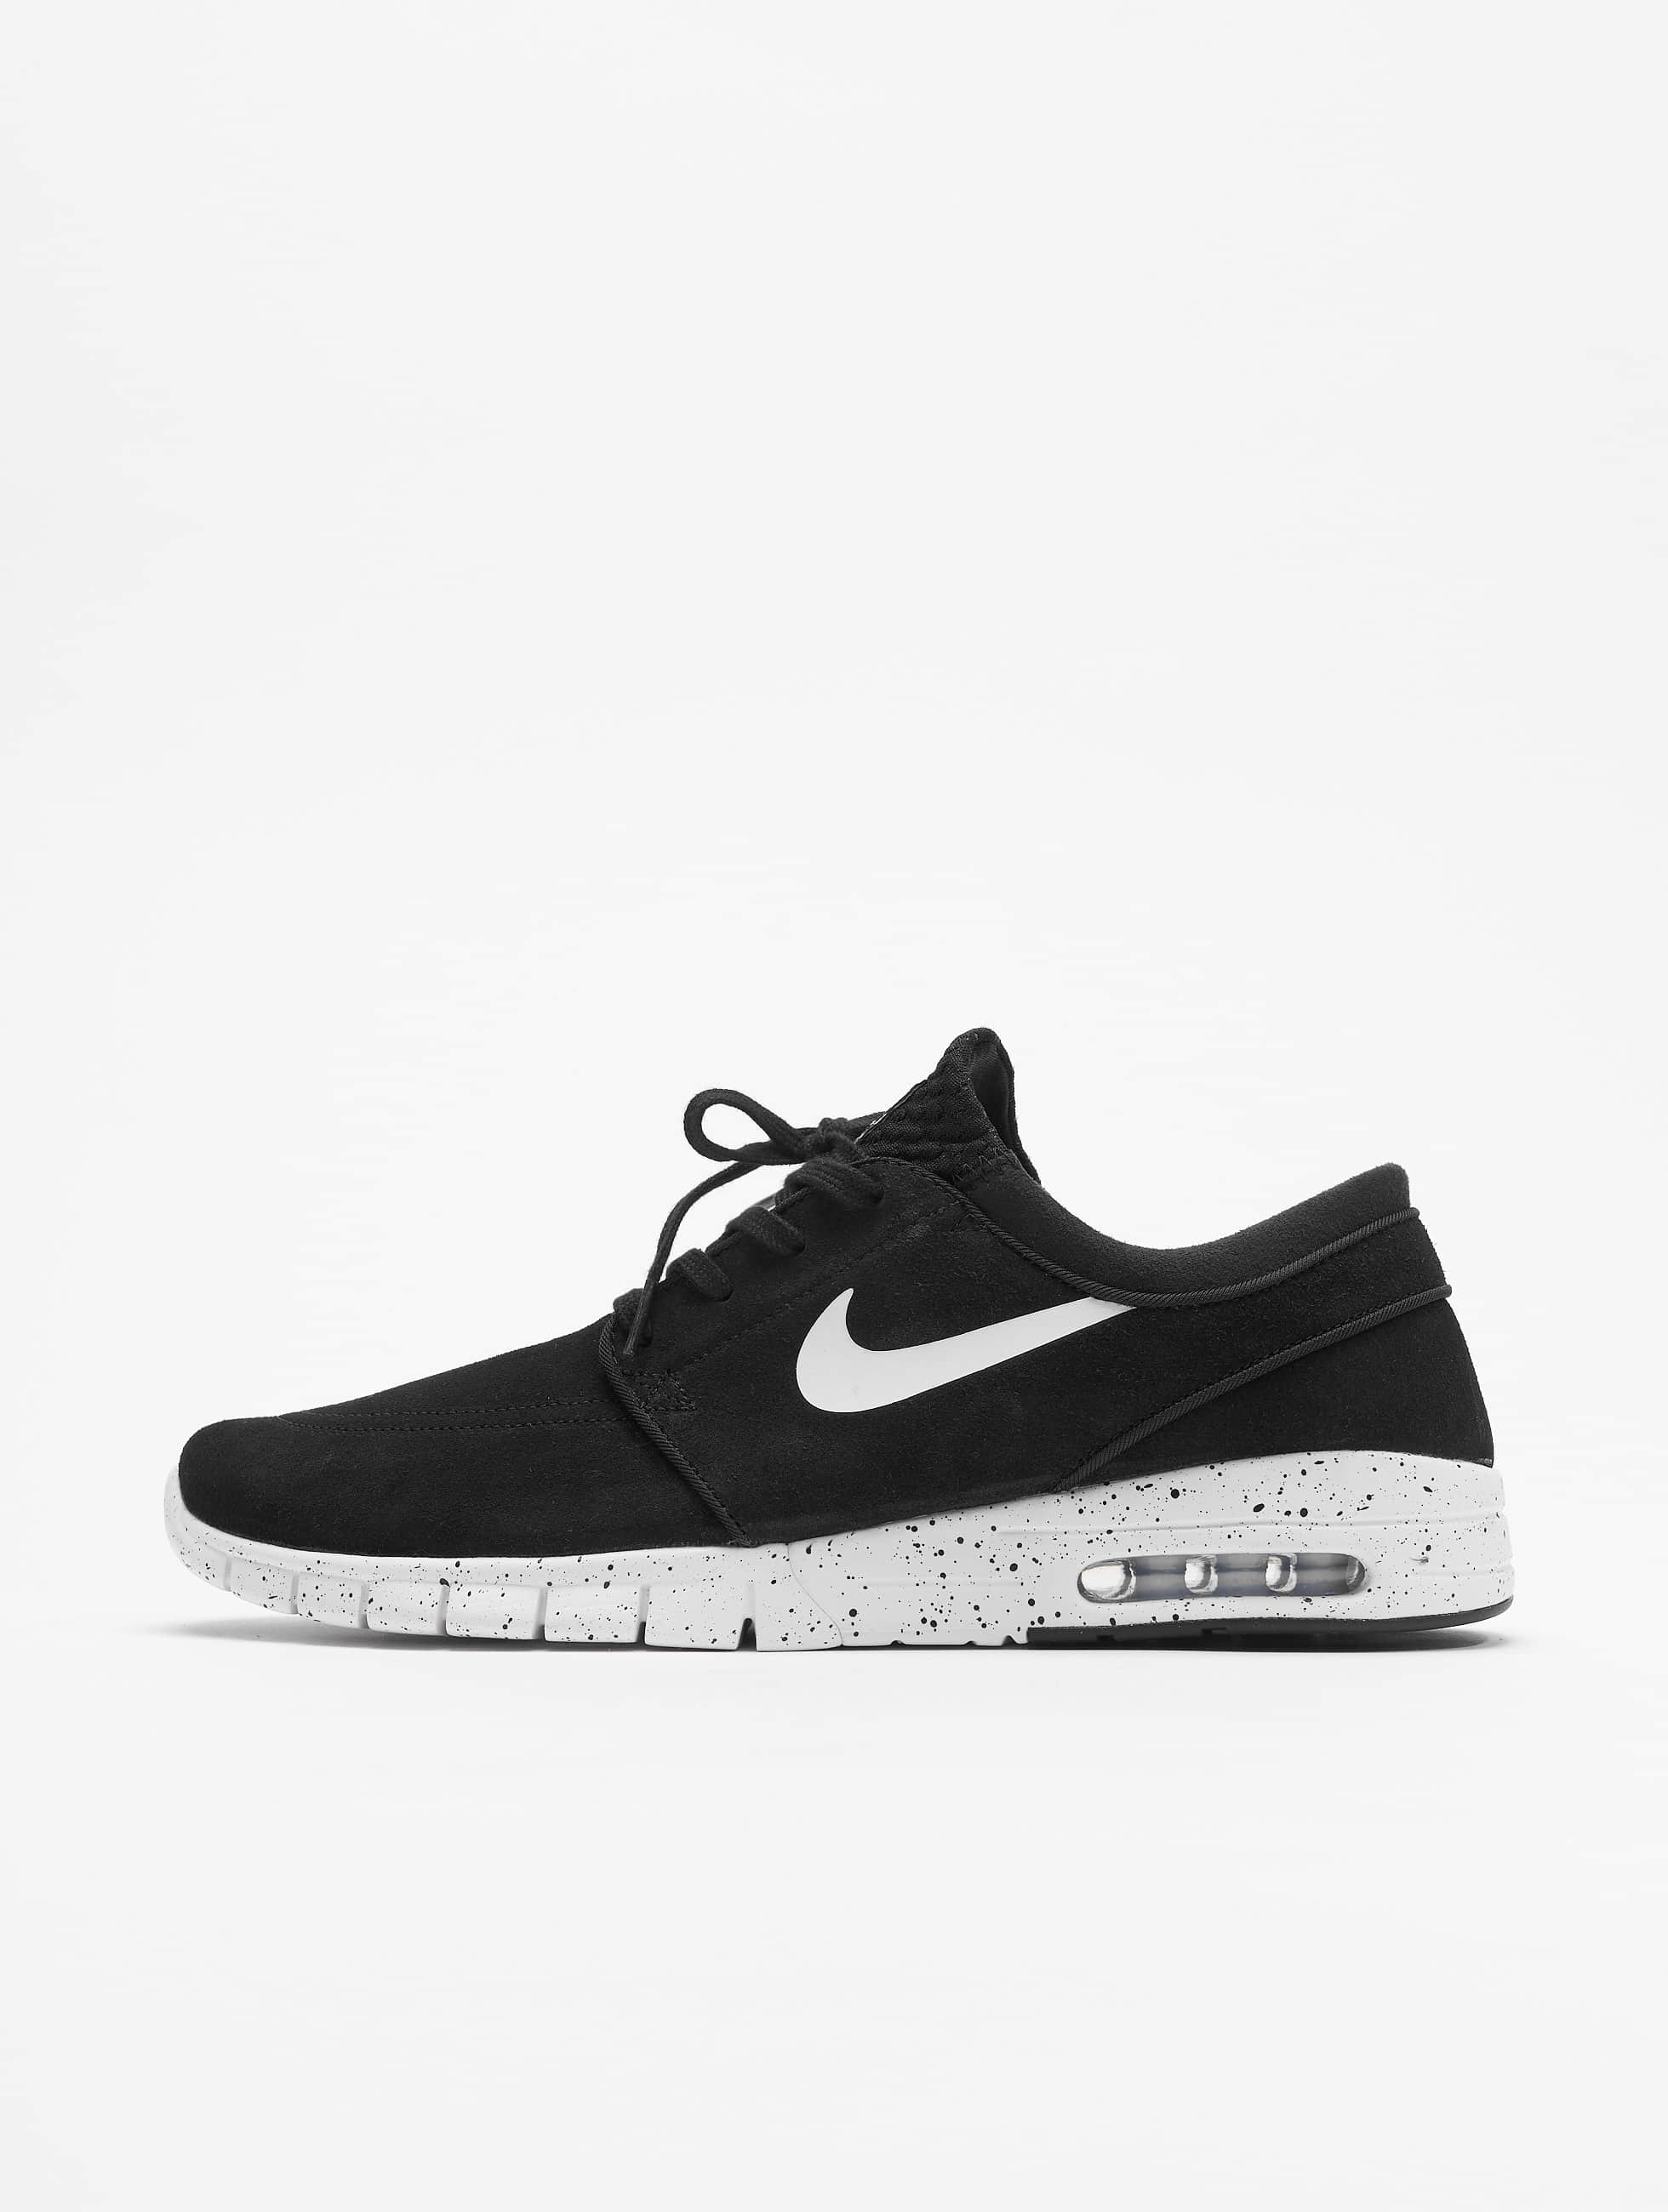 nike sb herren sneaker stefan janoski in schwarz 238266. Black Bedroom Furniture Sets. Home Design Ideas